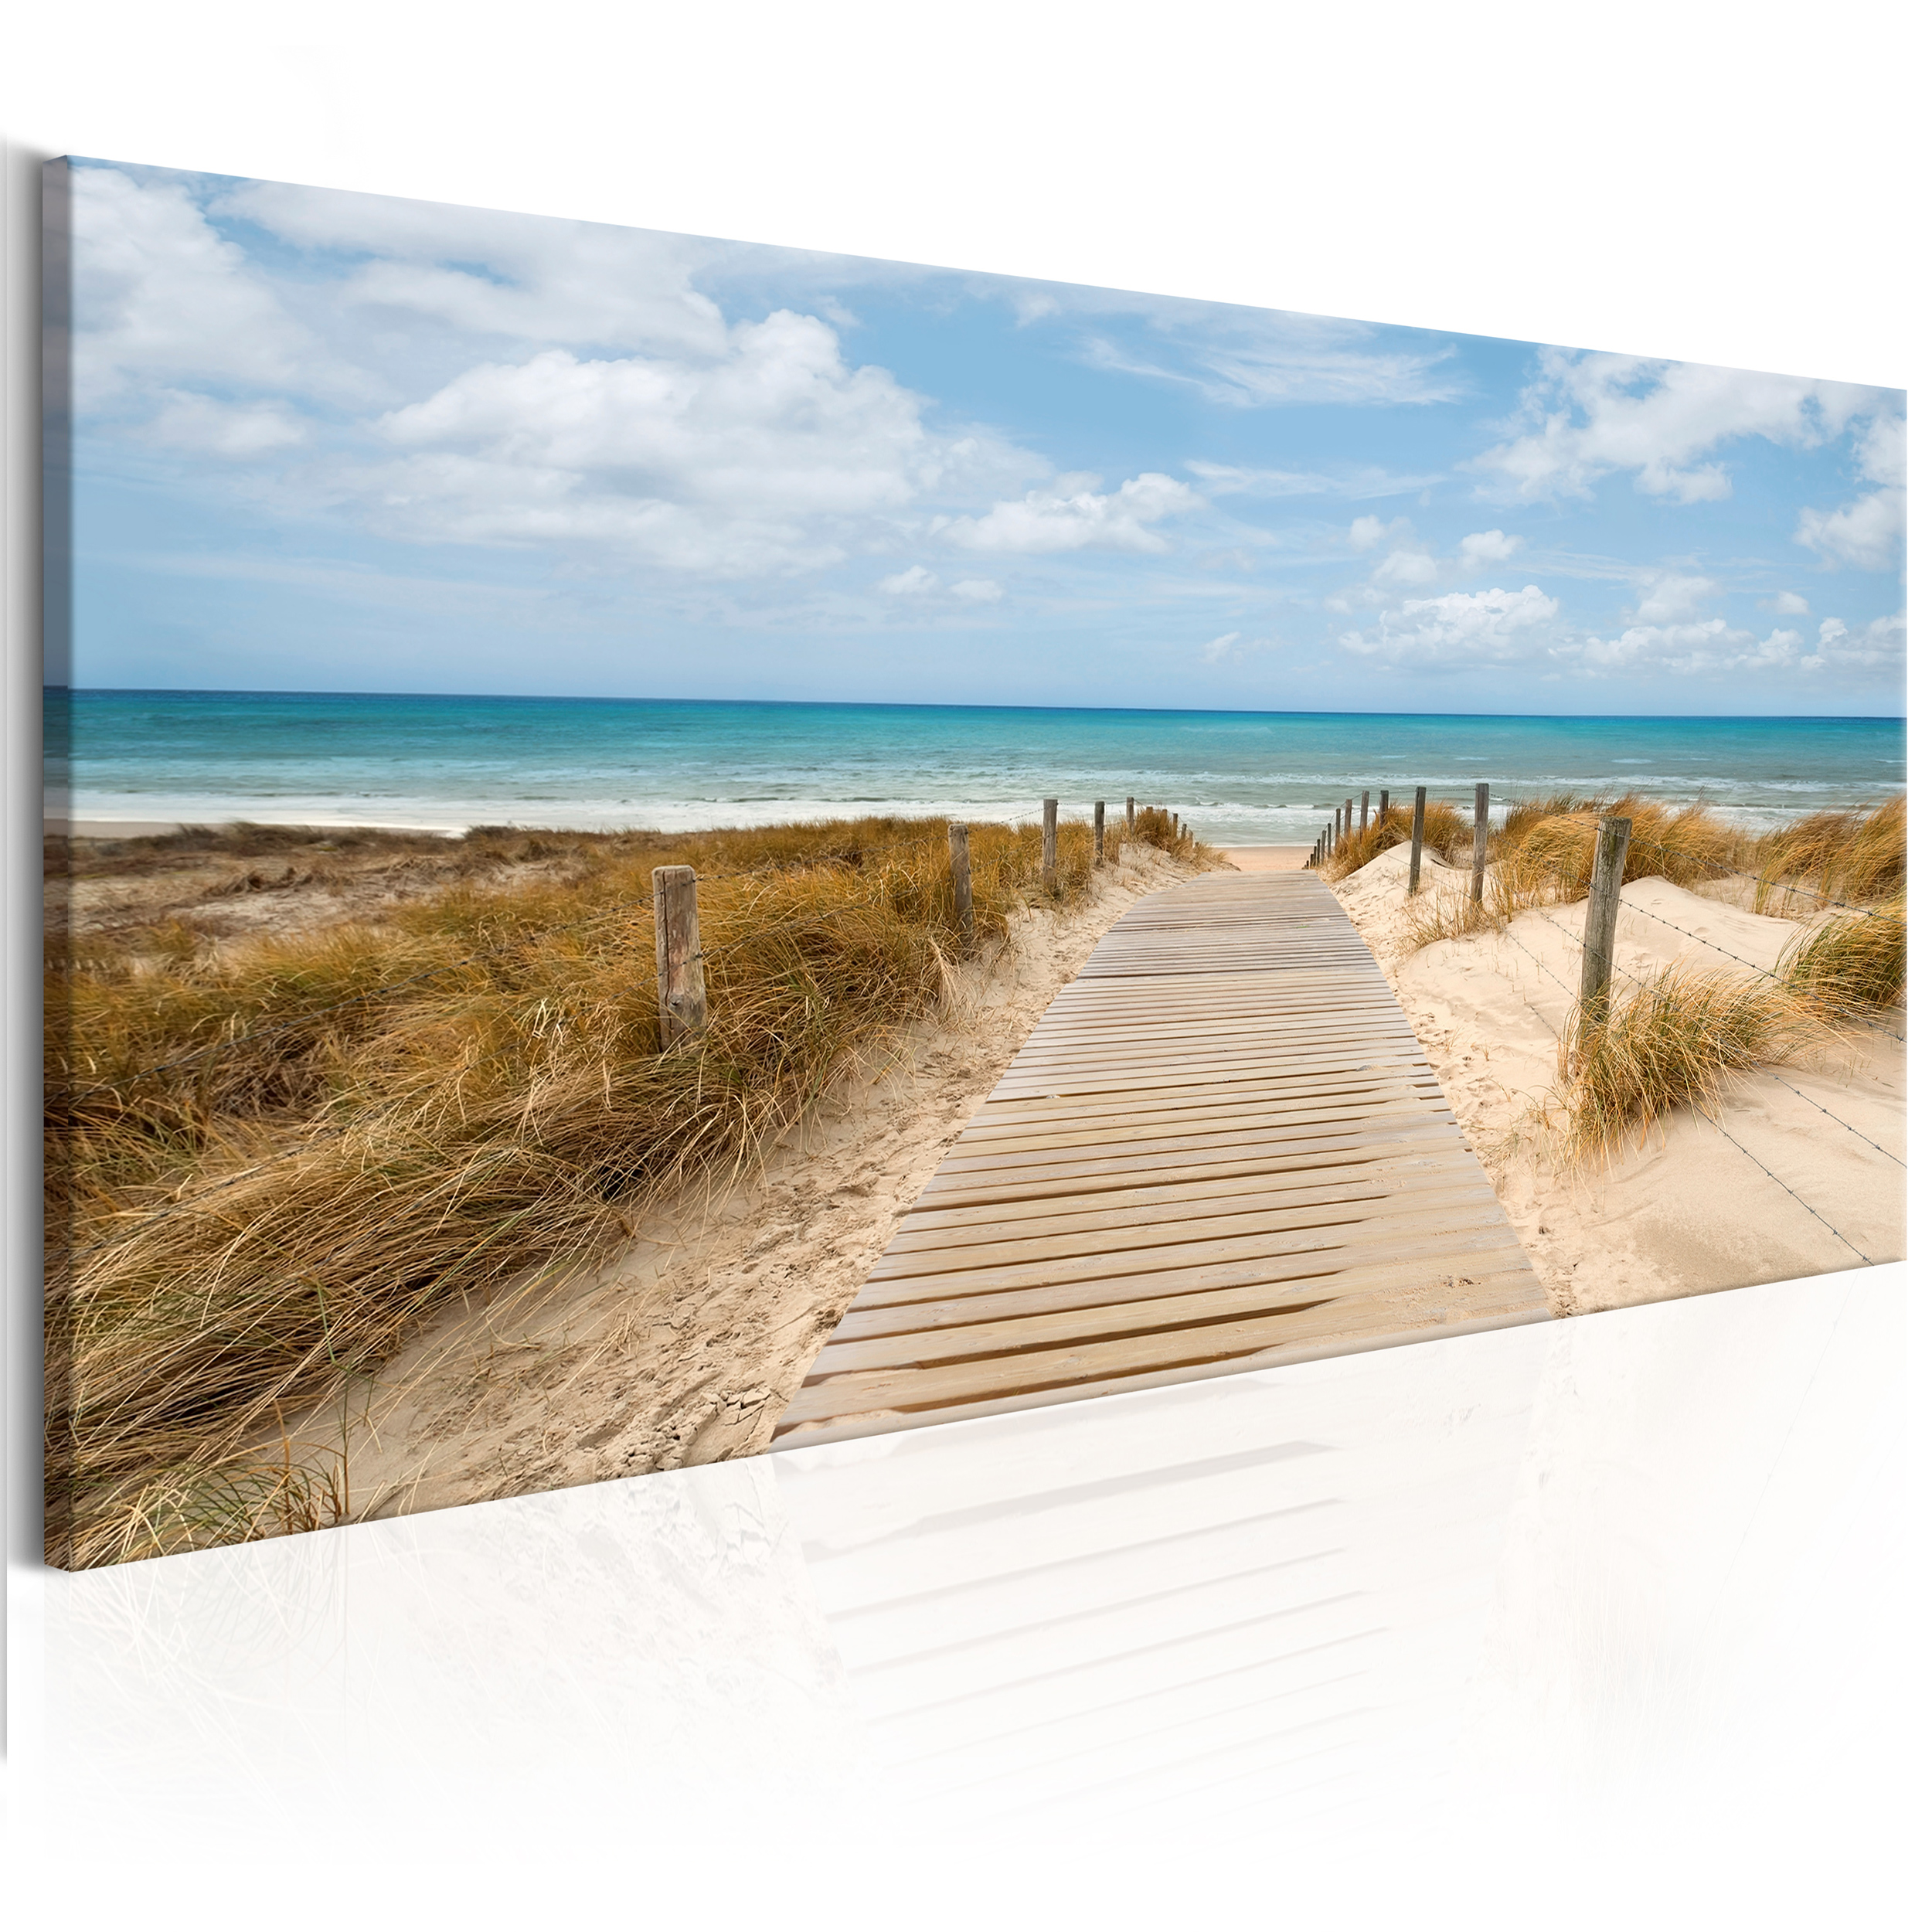 leinwand bilder wald strand meer natur landschaft wandbilder gro e auswahl ebay. Black Bedroom Furniture Sets. Home Design Ideas